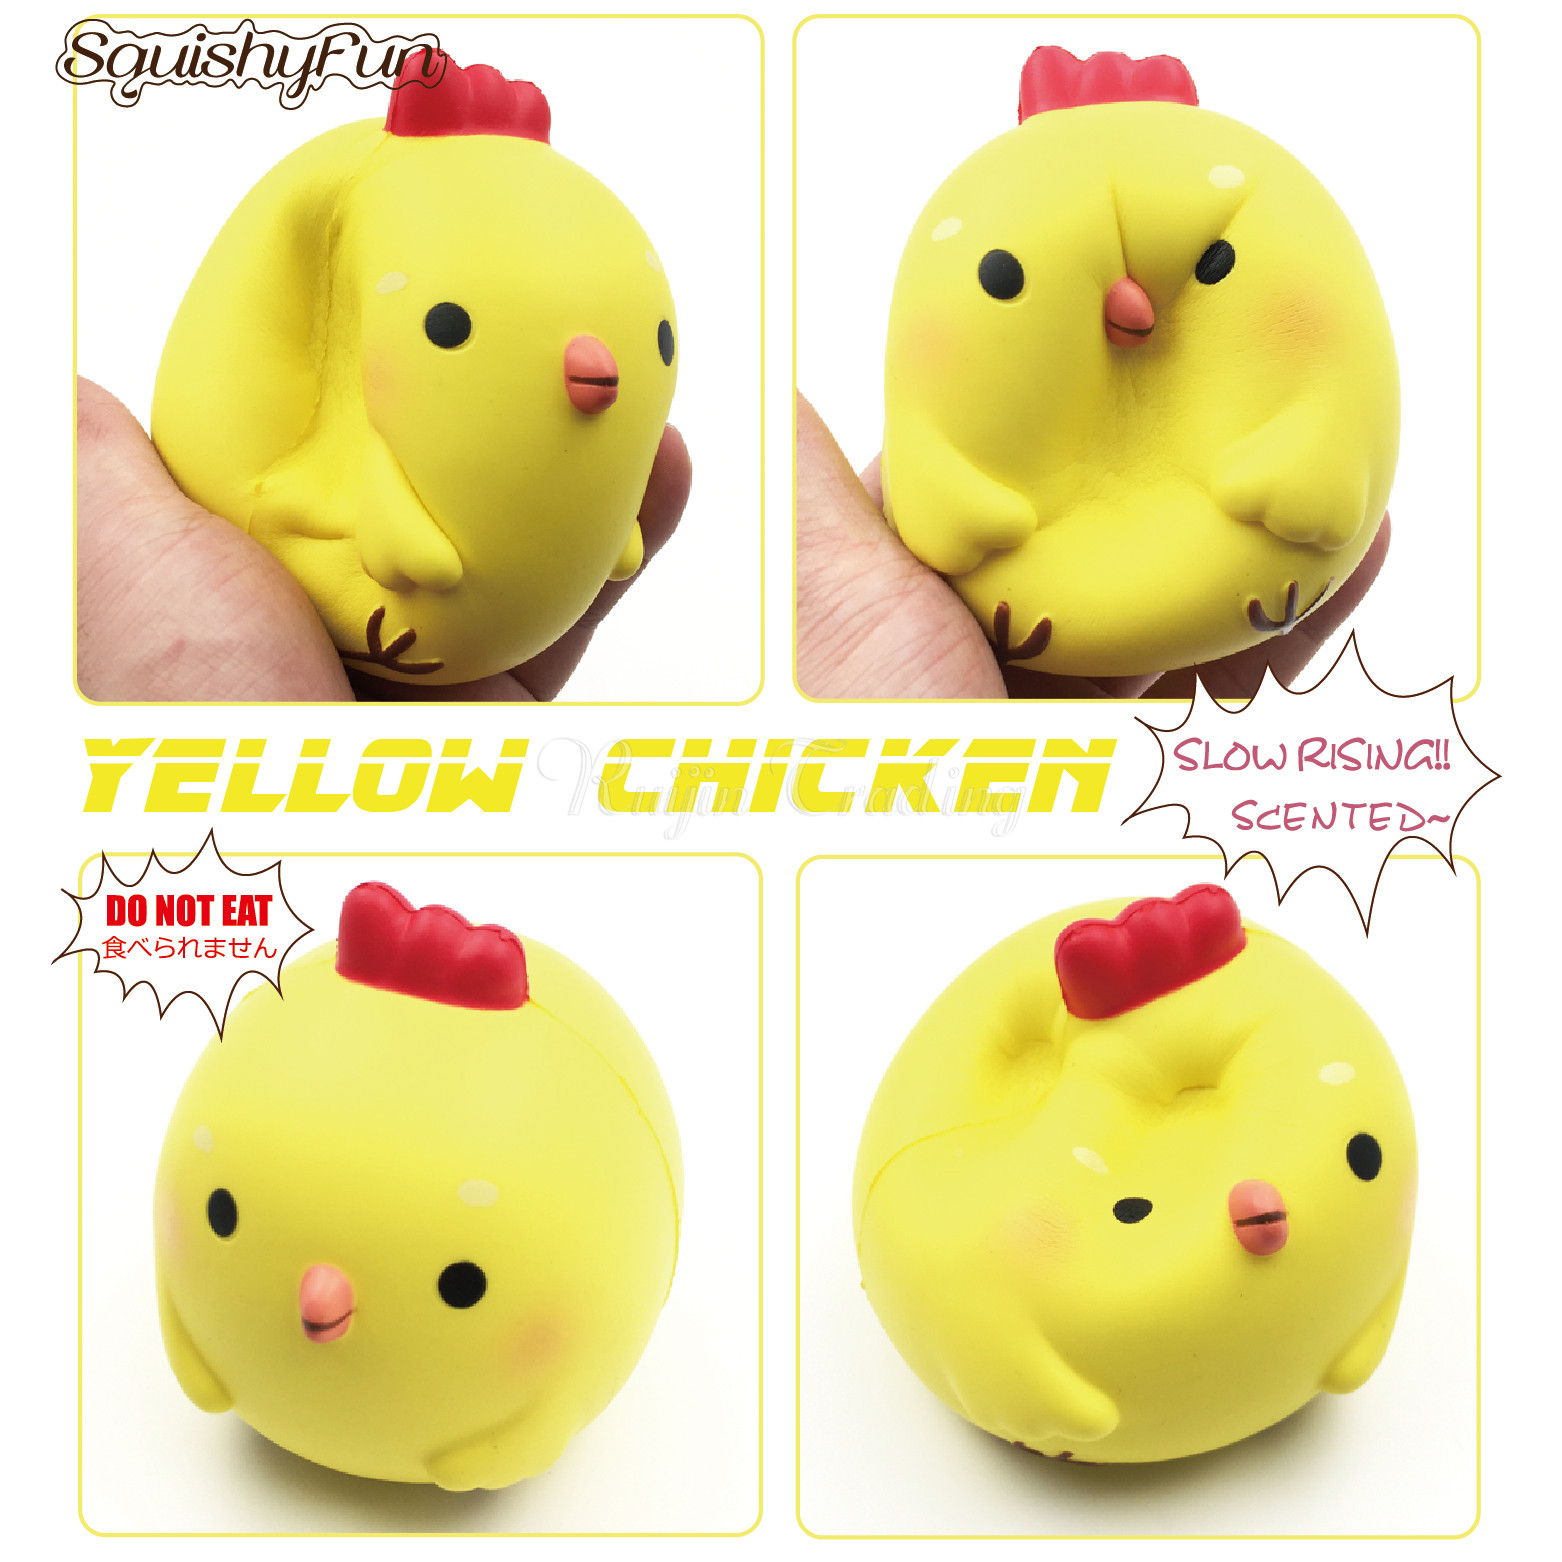 New Jumbo 10CM Chick Chicken Squishy Super Slow Rising Retail Packaging Phone Straps Squishy Scented Pendant Bread Kid Toy Gift